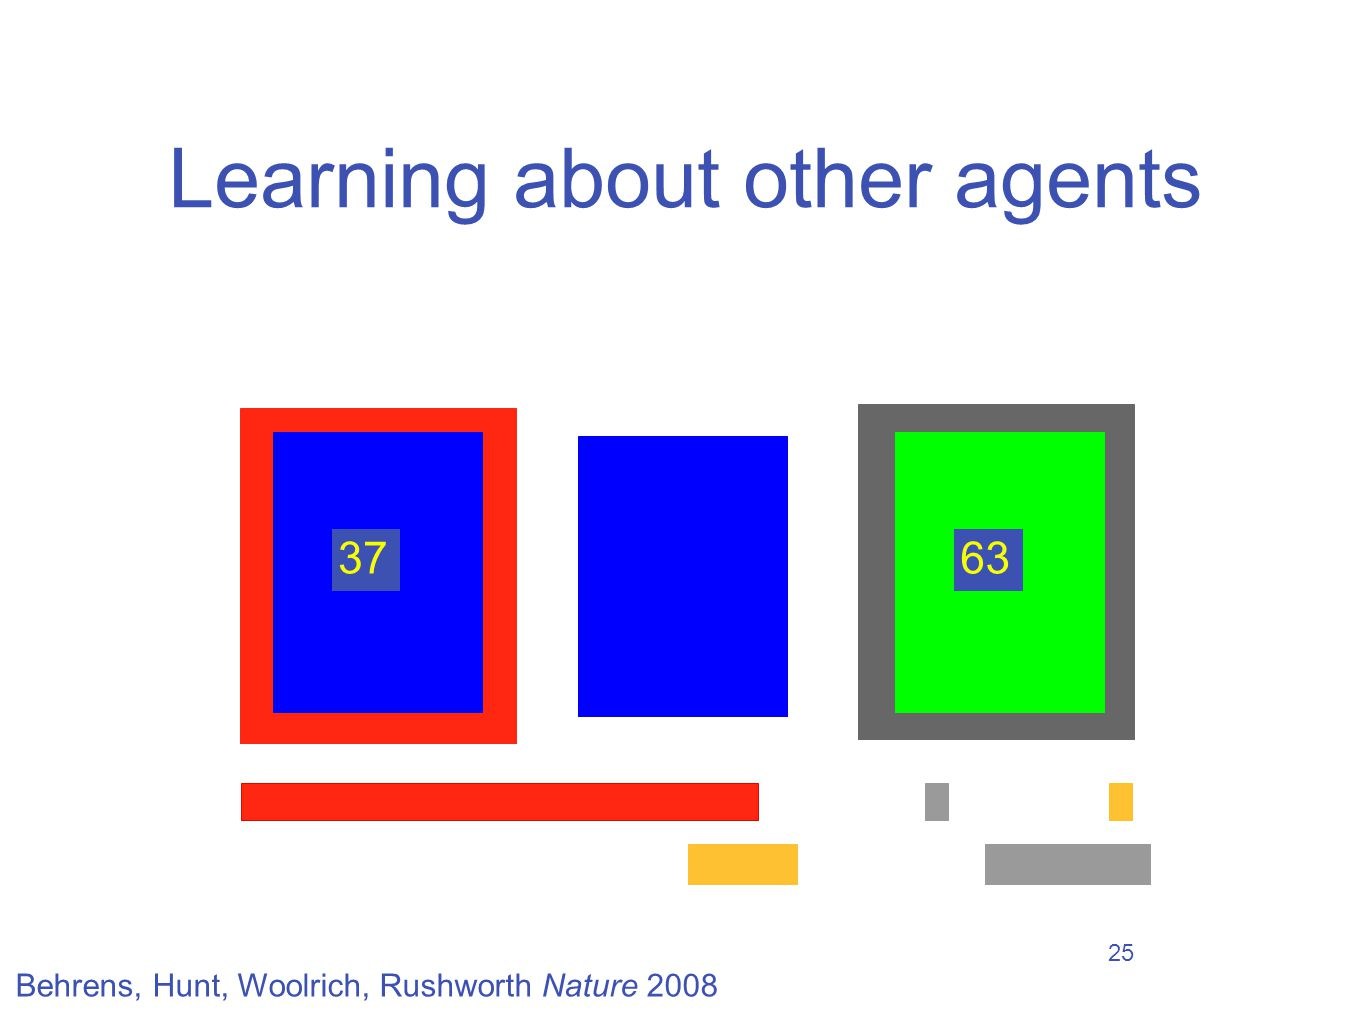 25 Learning about other agents 37 63 Behrens, Hunt, Woolrich, Rushworth Nature 2008